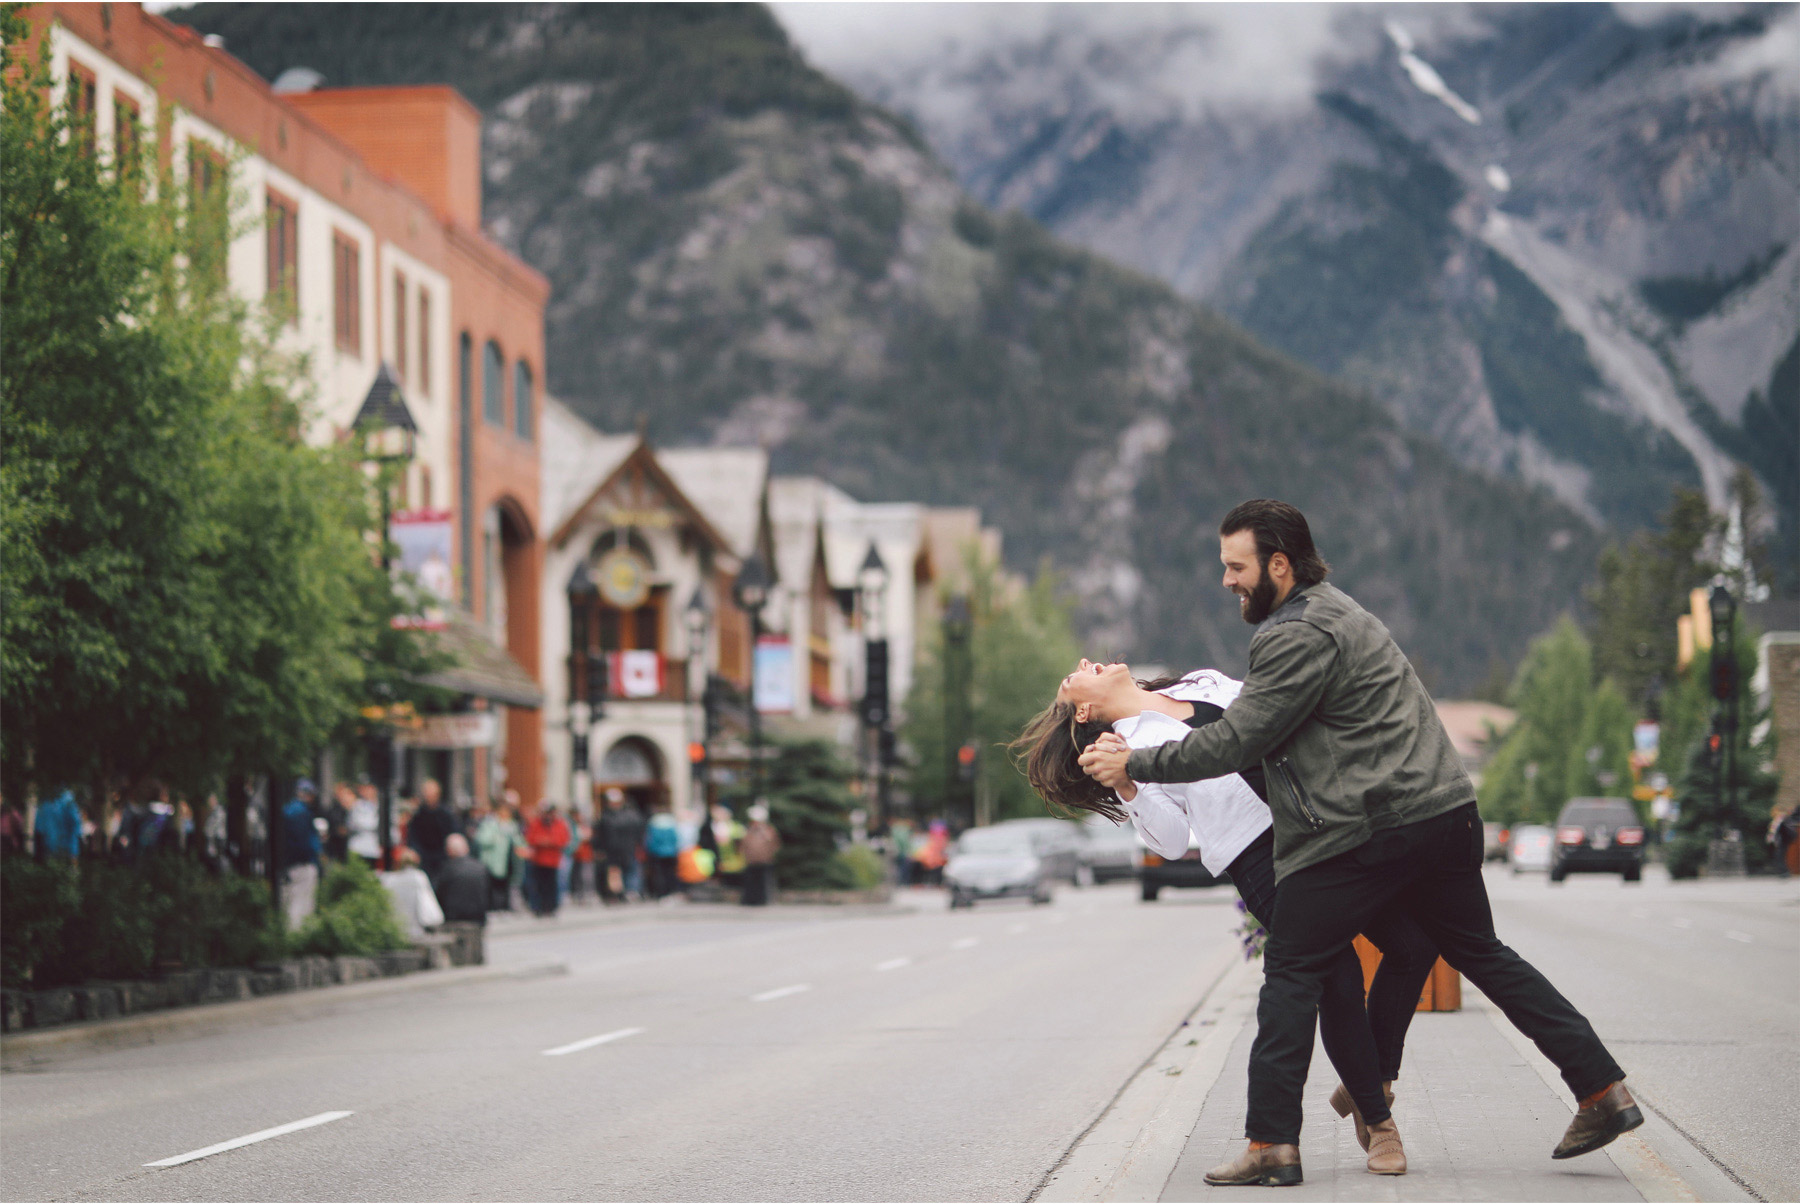 03-Calgary-Canada-Engagement-Photography-by-Vick-Photography-Mountains-Lizz-and-Brady.jpg